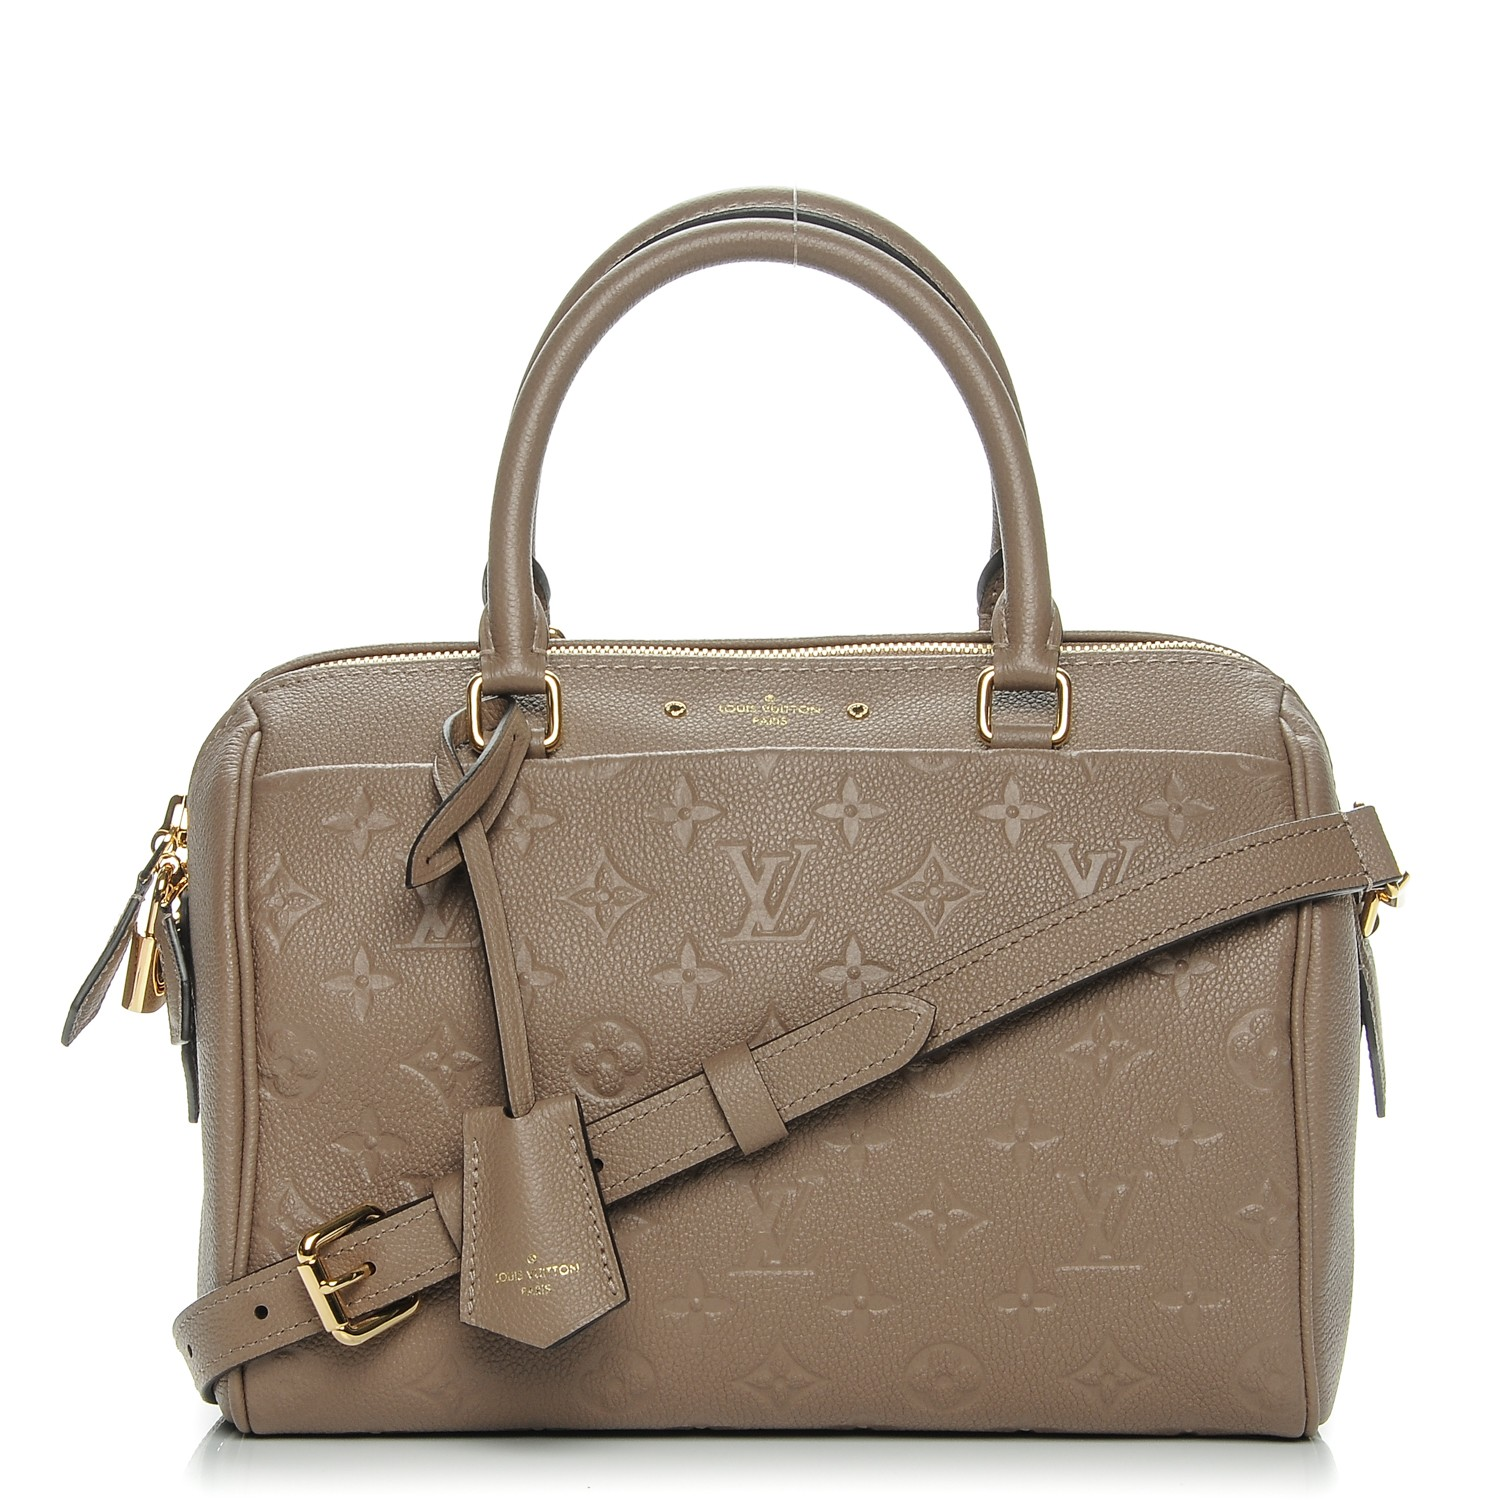 cba342cd4ed8 LOUIS VUITTON Empreinte Speedy Bandouliere 25 NM Taupe Glace. Empty.  Pinch Zoom